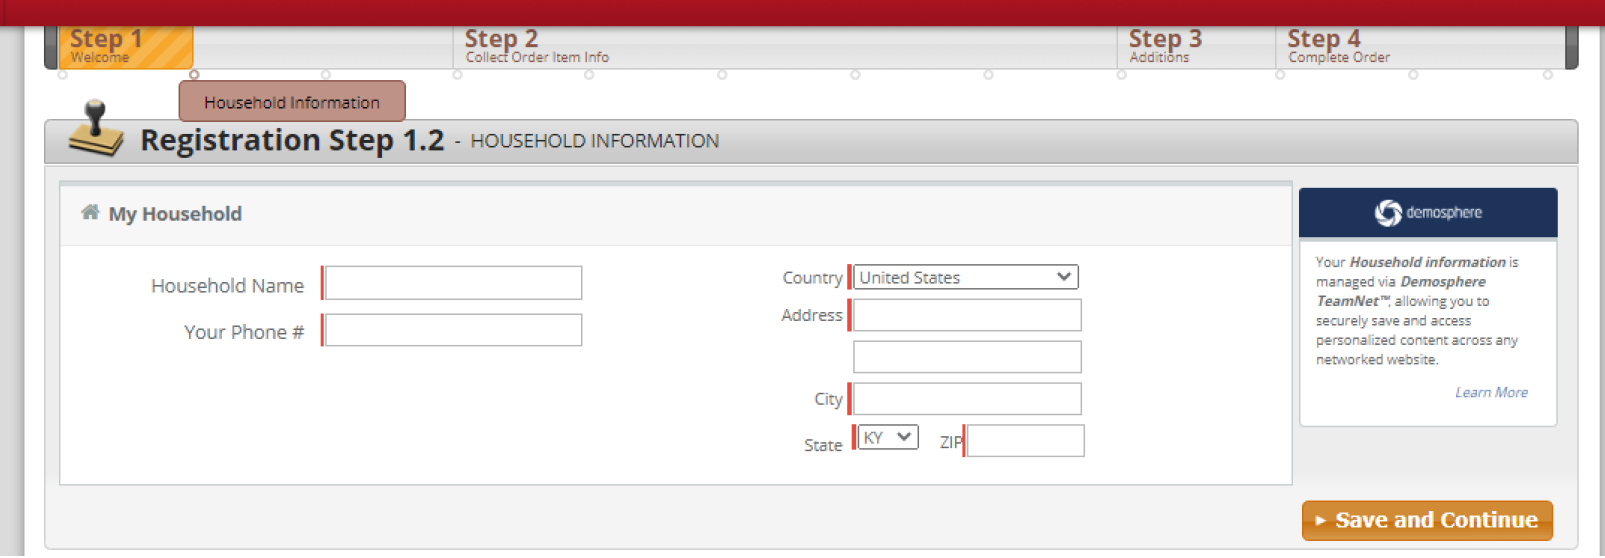 Image showing how to create your household information in Demosphere. Household name and Phone number are to the left with country, address, city, state and zip to the right.